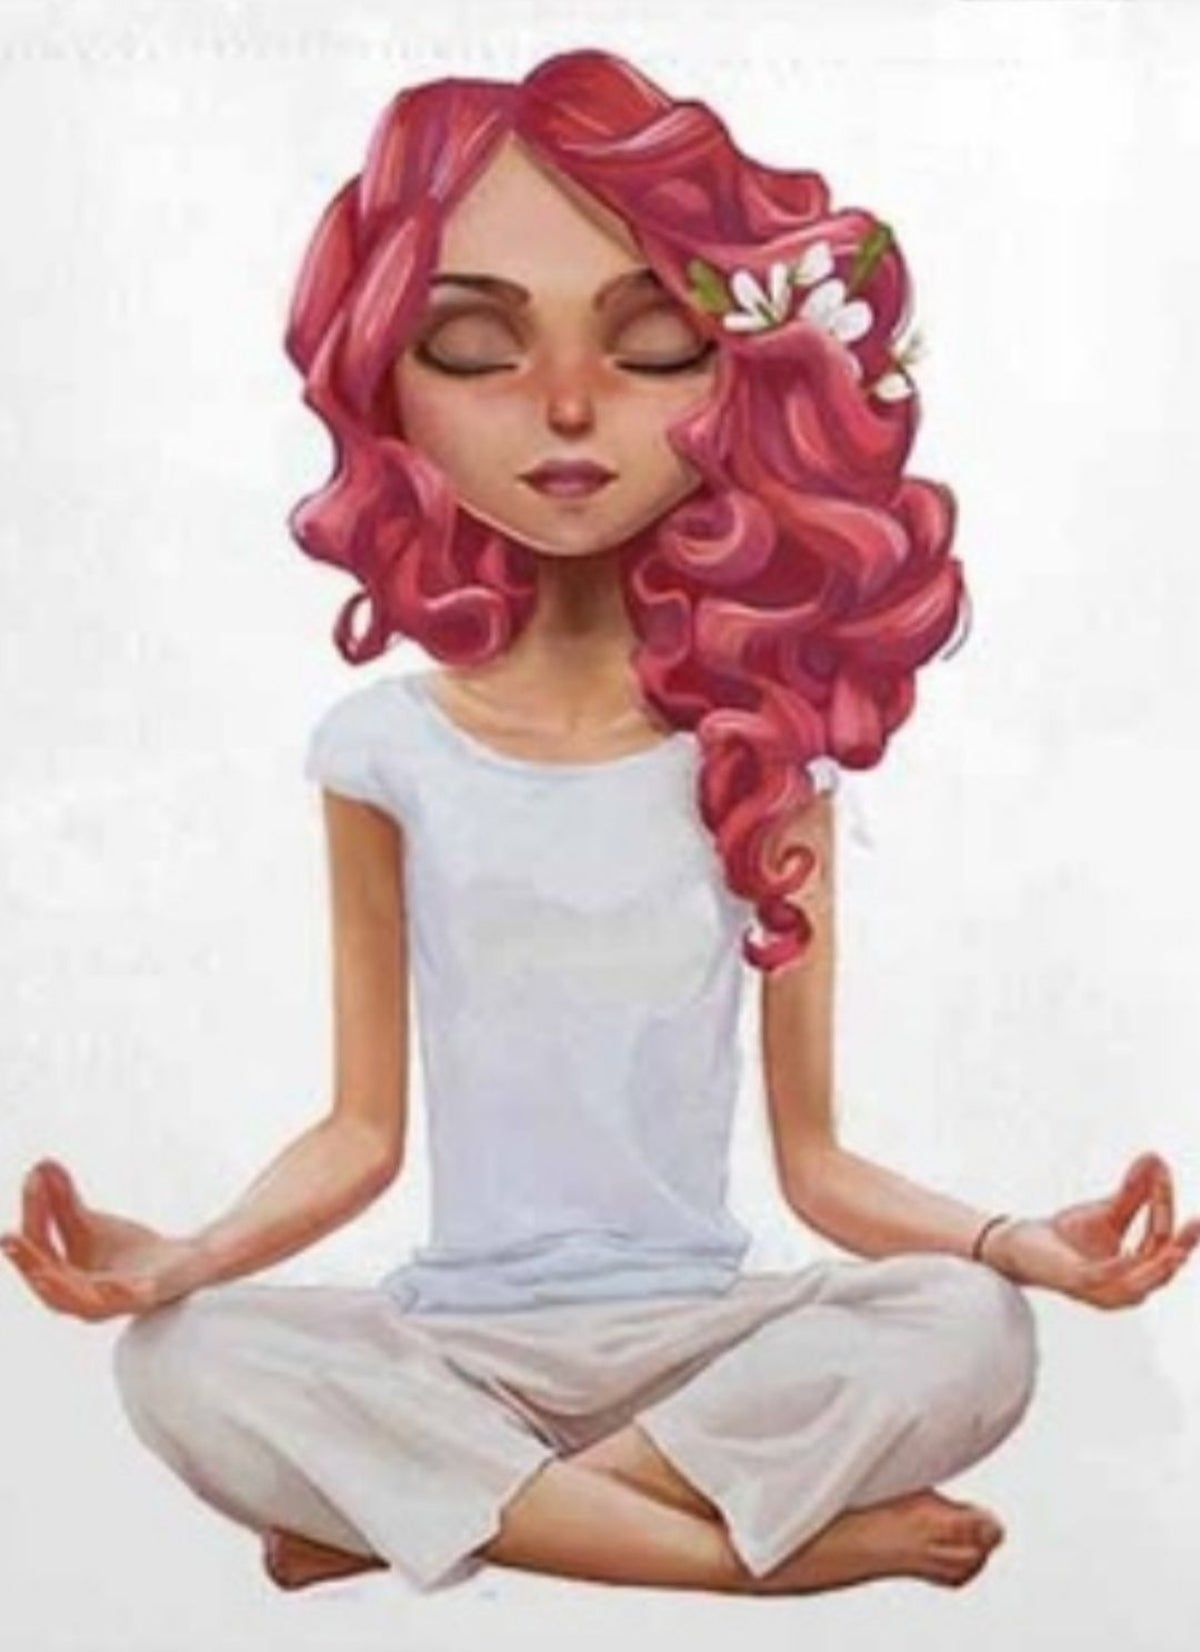 Beautiful Yoga Meditation Pillow 18x18 In 2020 Yoga Cartoon Yoga Illustration Yoga Drawing